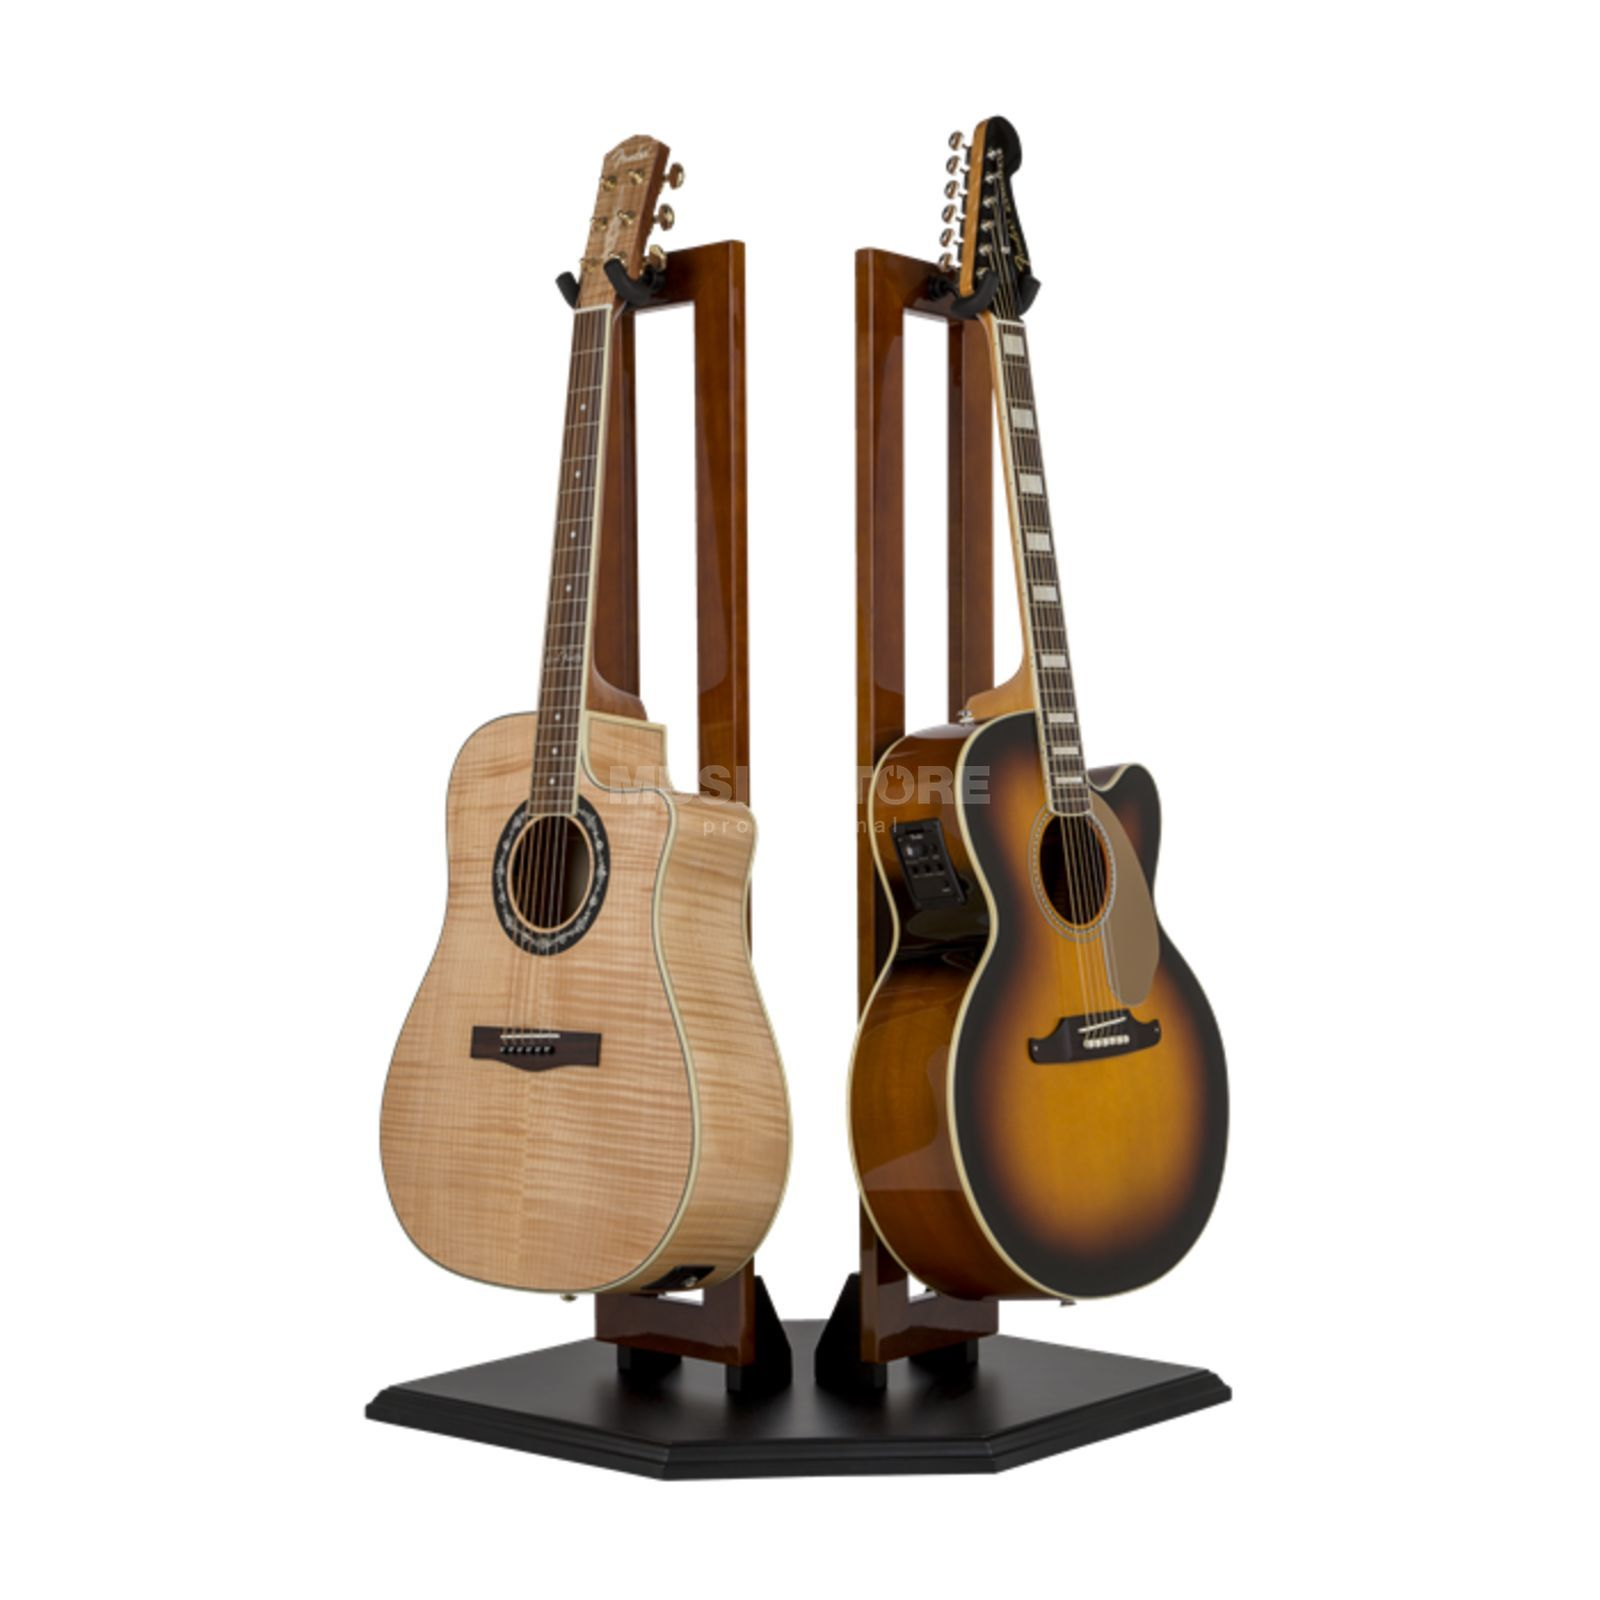 Fender Wood Hanging Display Stand - Double Guitar Stand Cherry Produktbild